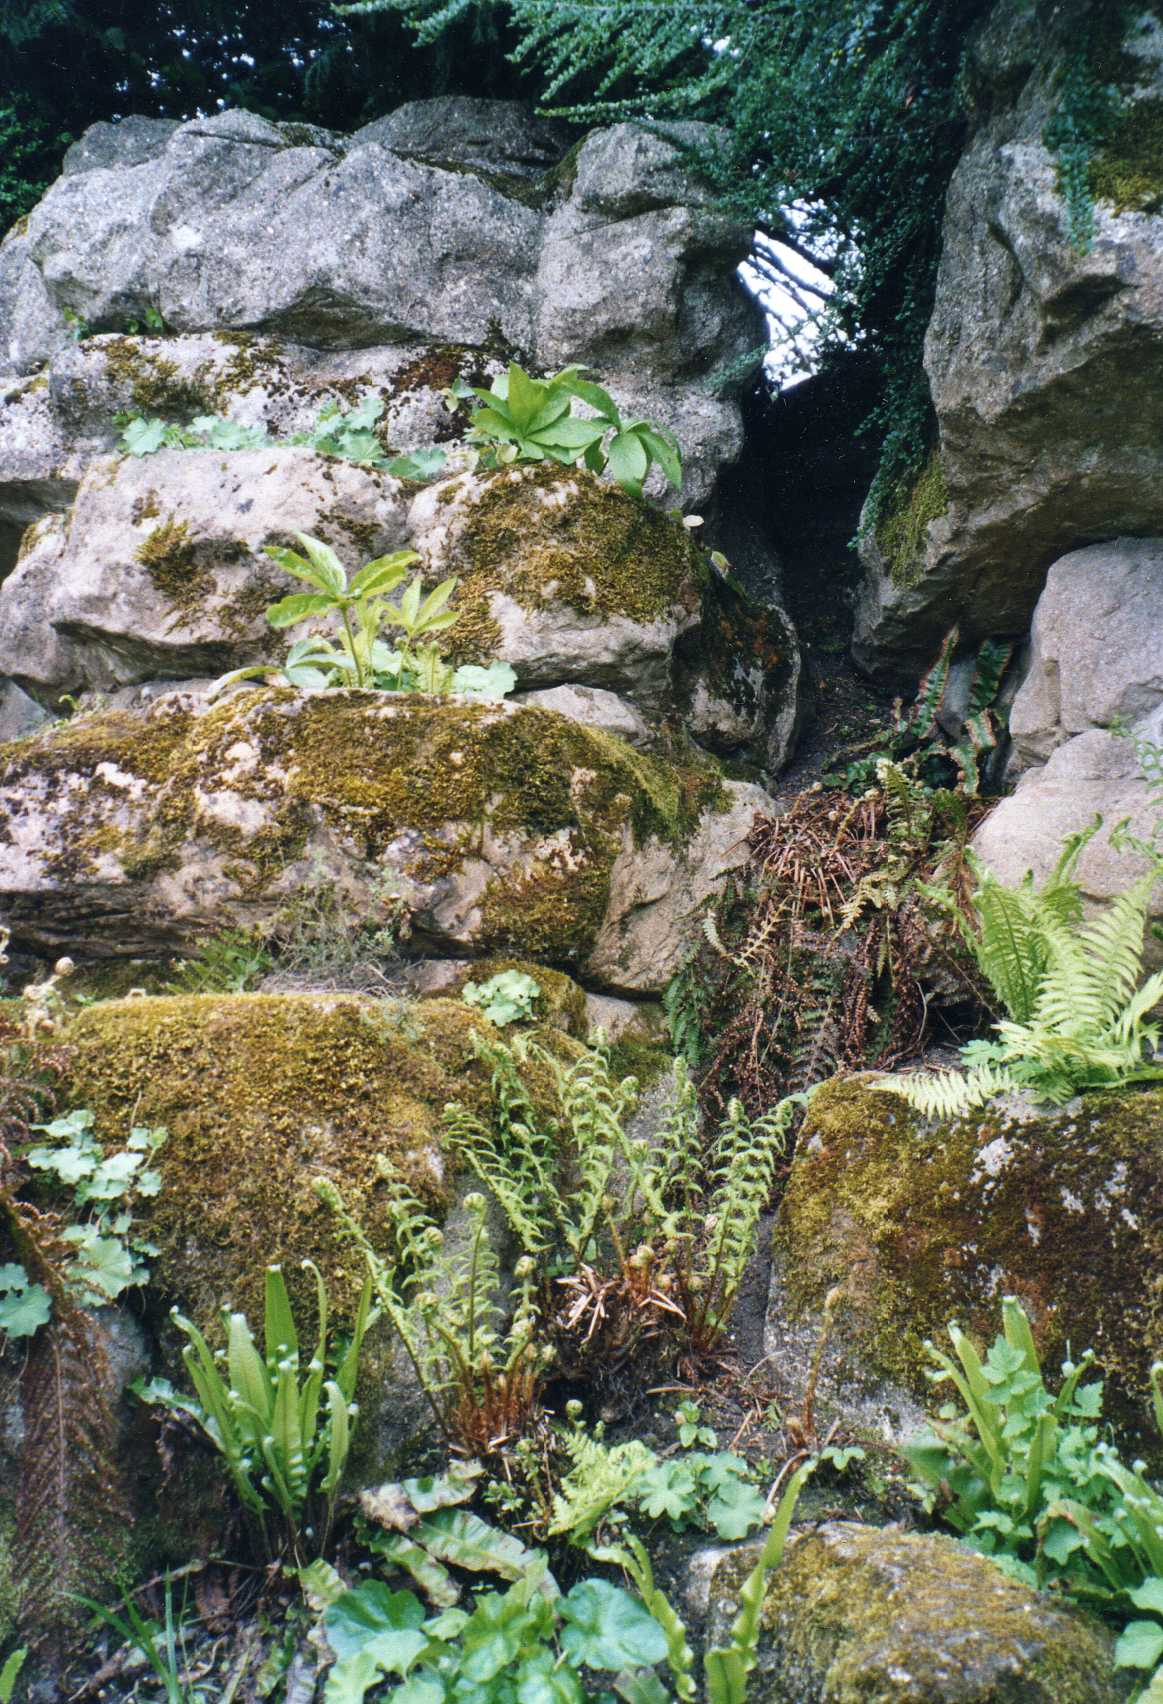 The rockery at Audley End, Essex